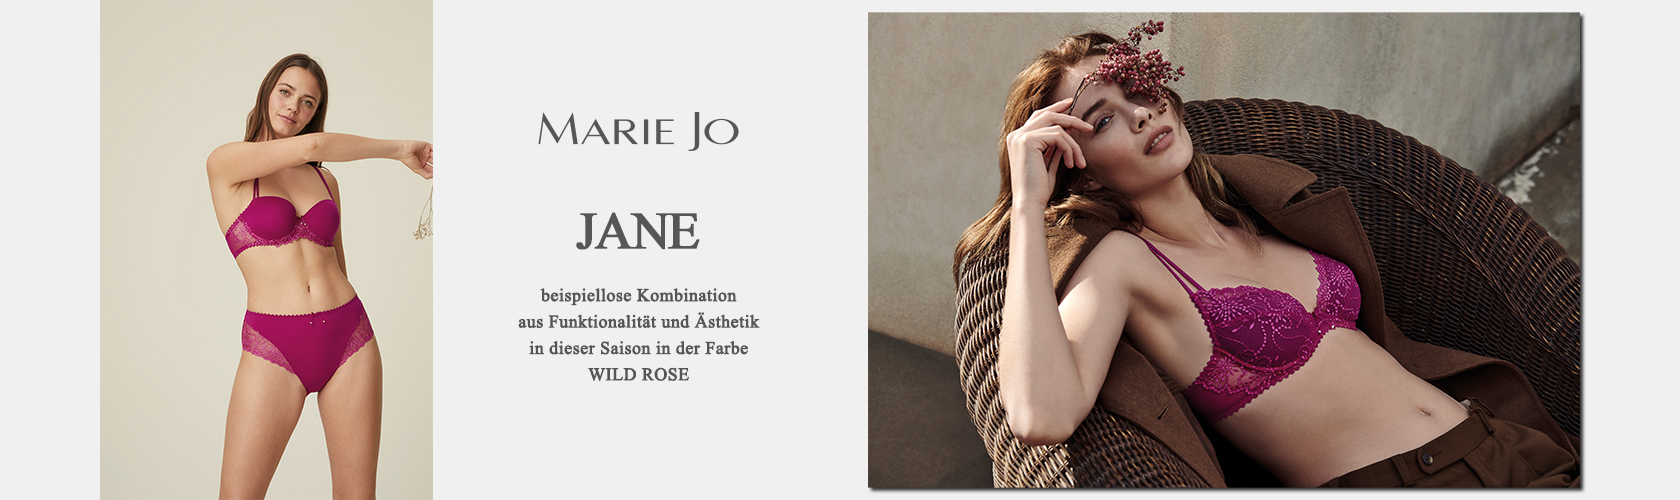 Slideshow JANE WIR 11.09.